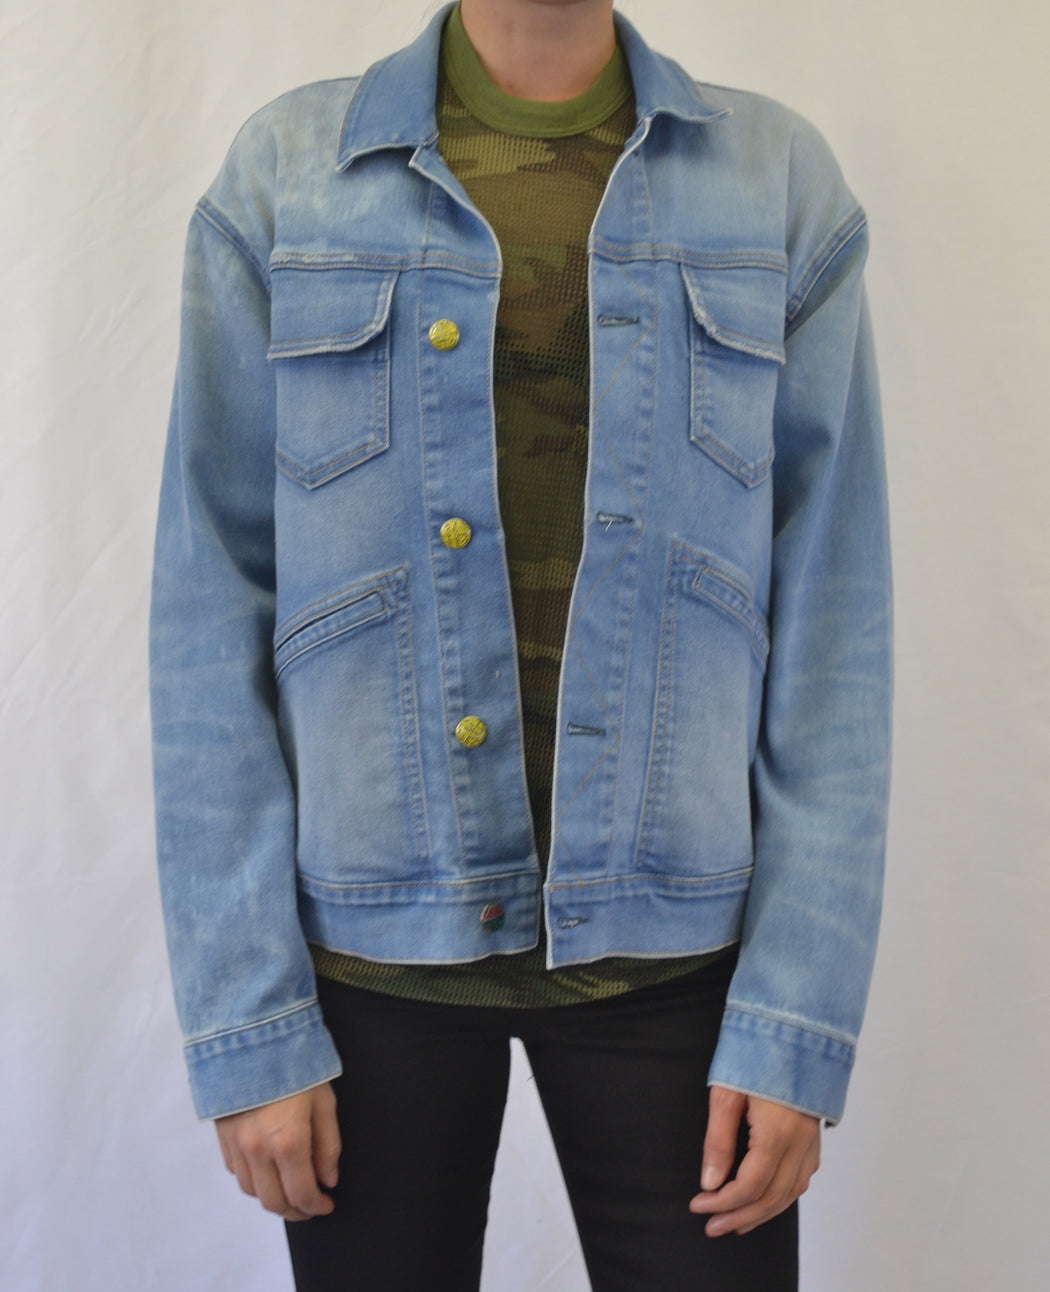 BIG Trucker Jacket in our Chemical FREE Life Line Wash